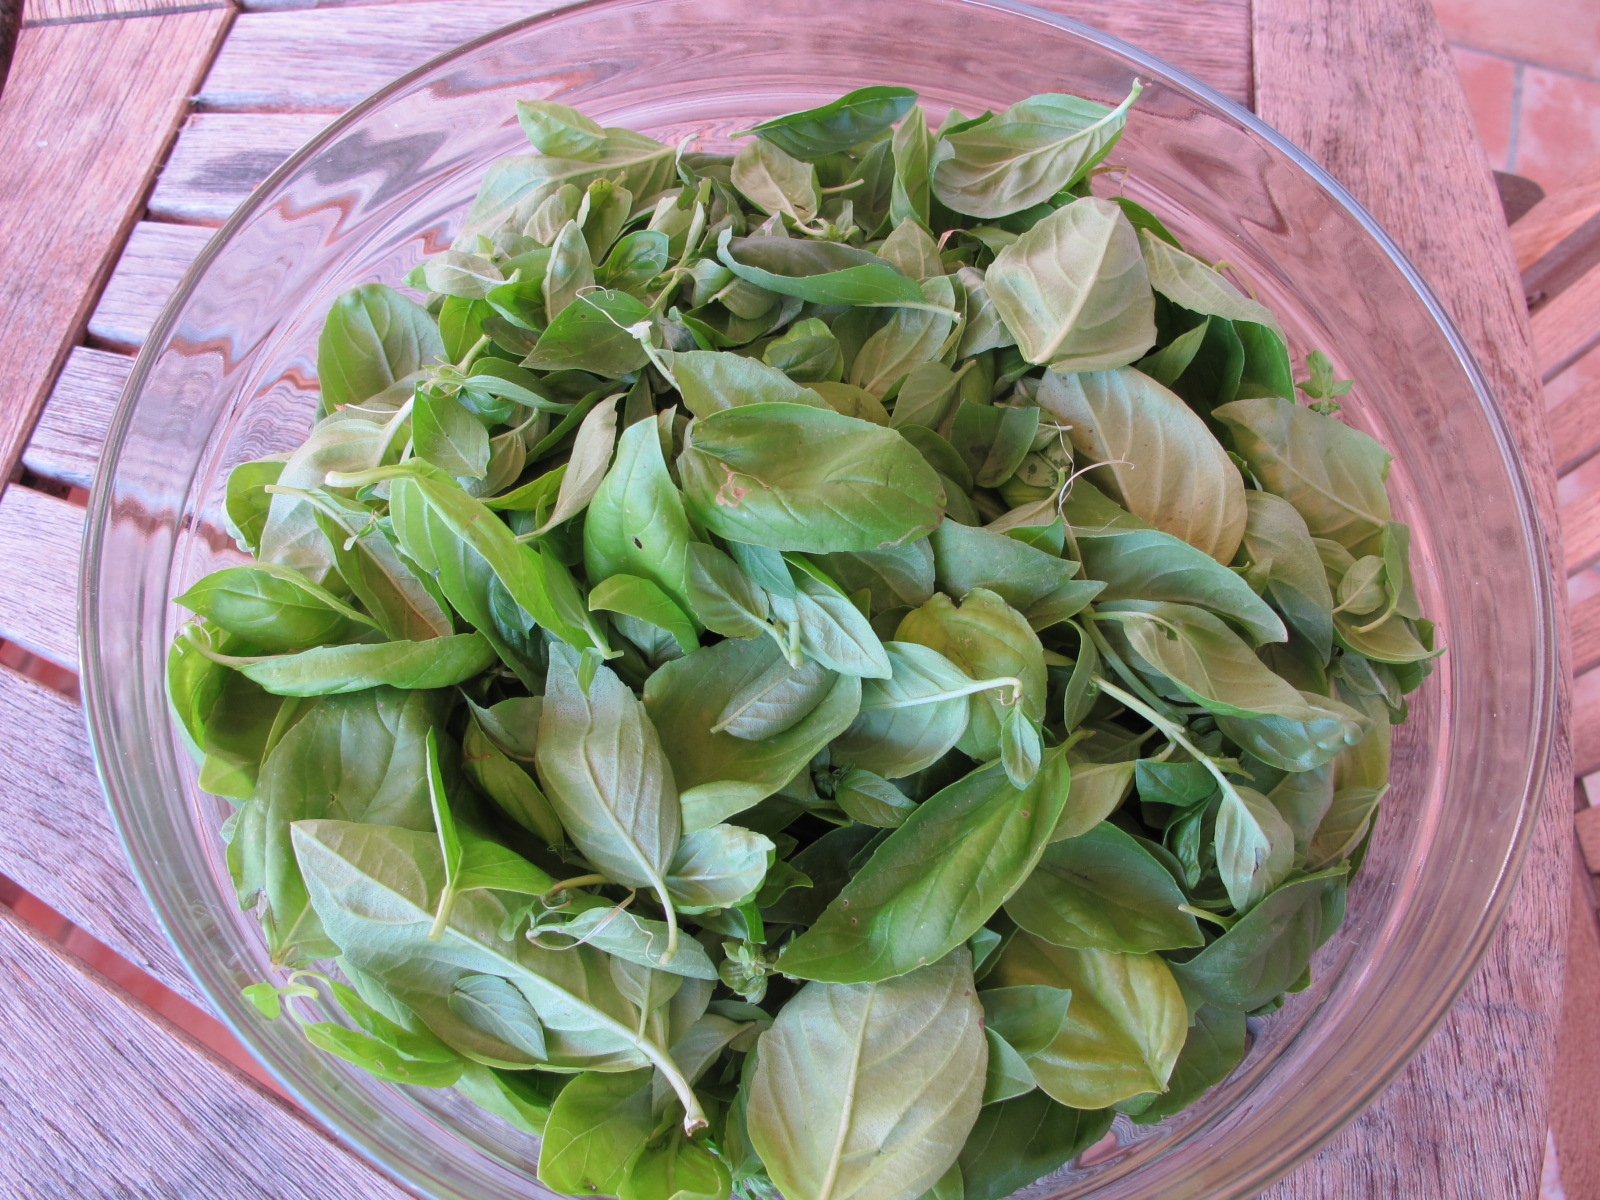 an excess of basil homemade pesto notes on a spanish